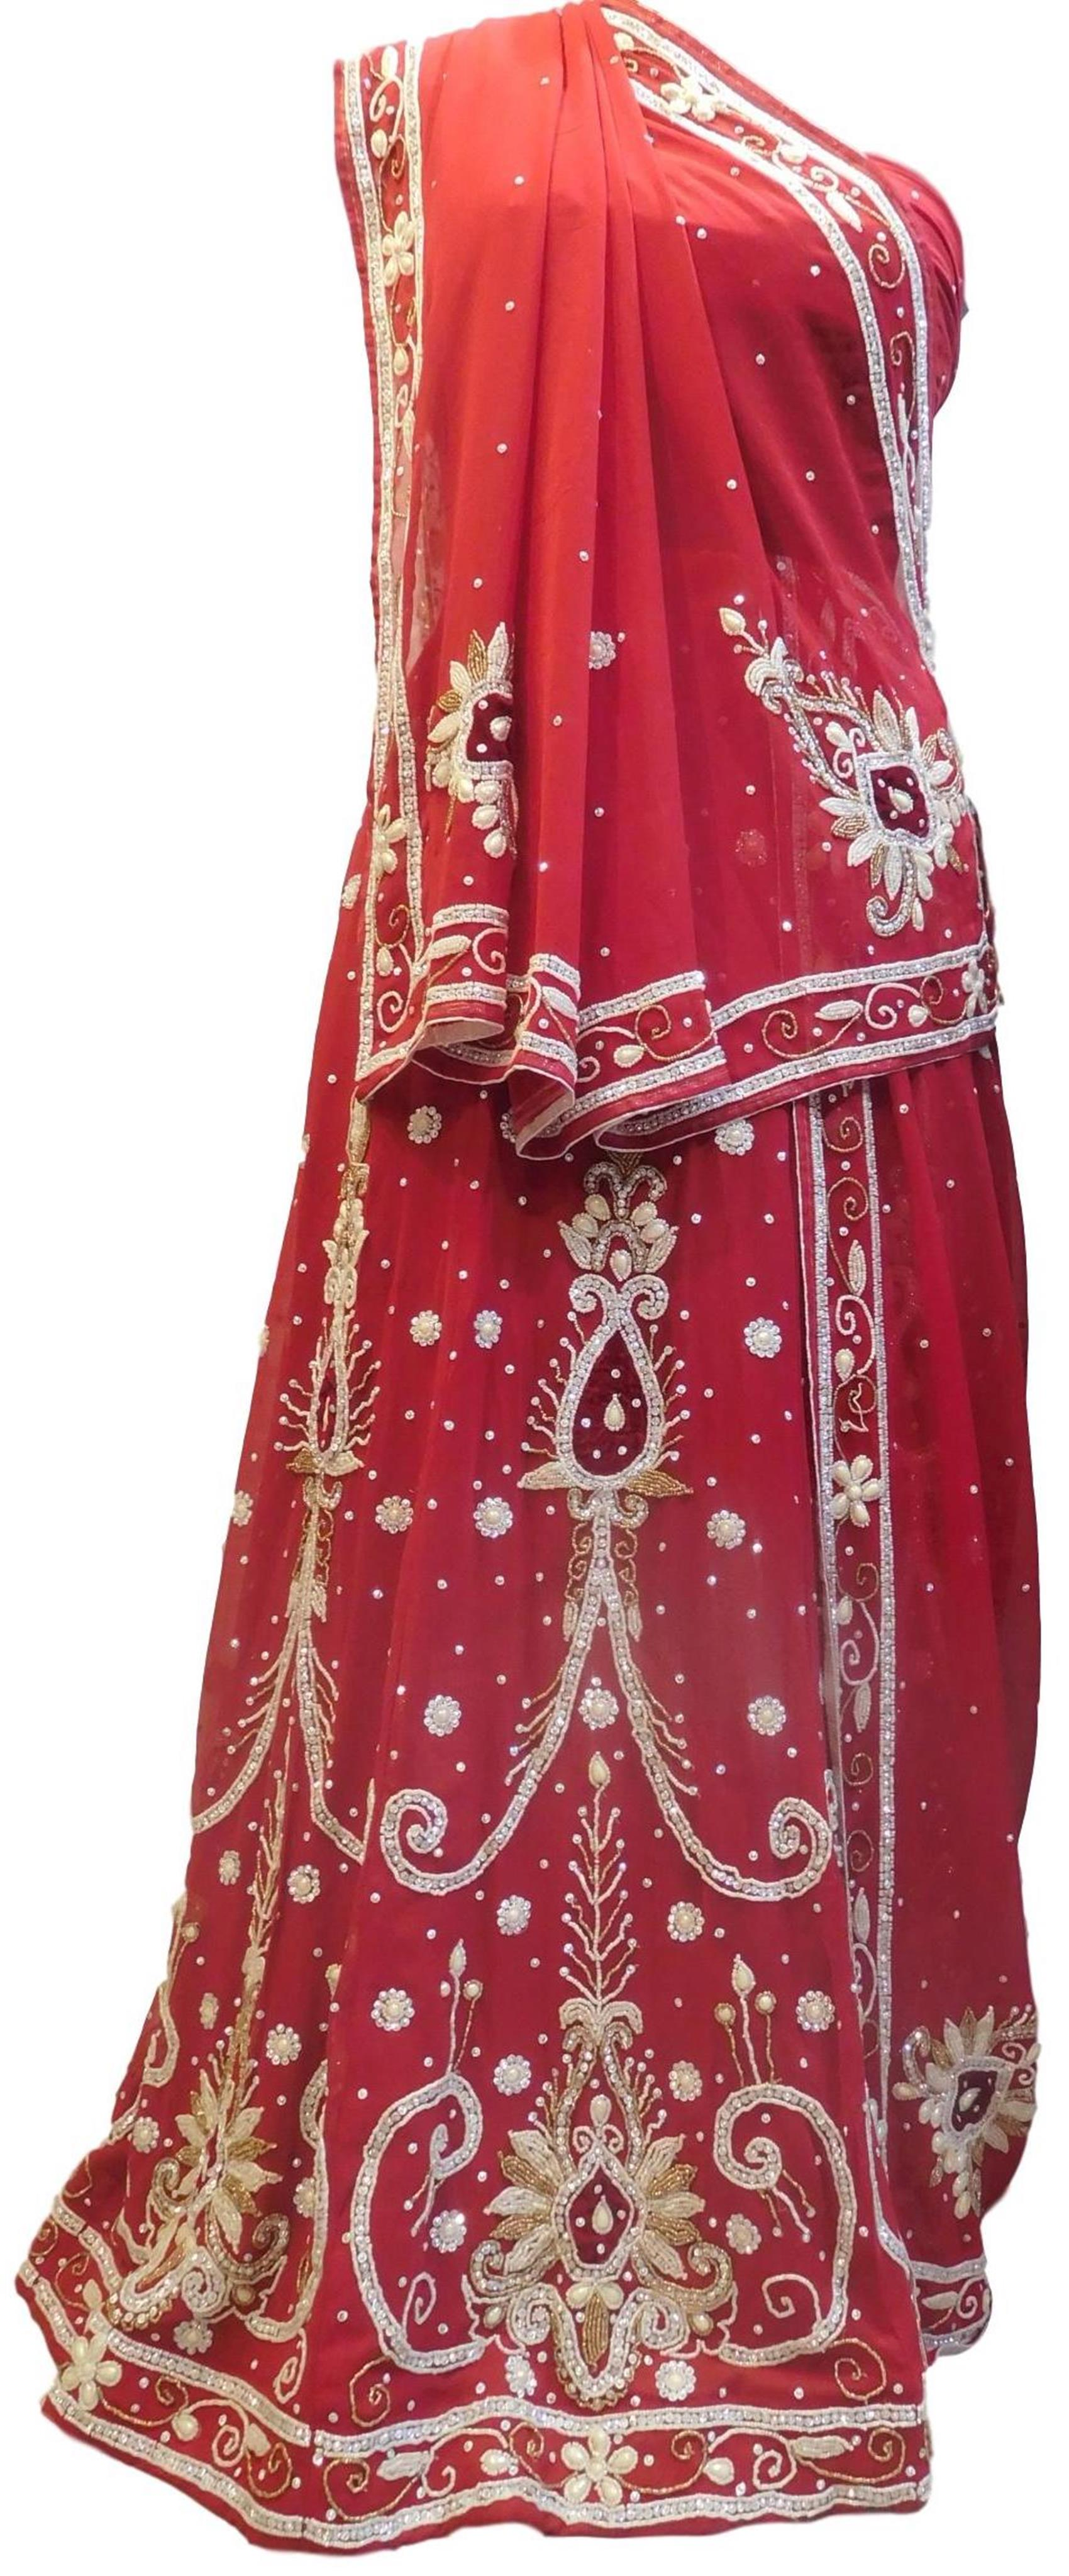 Red Designer Wedding Partywear Georgette Bullion Beads Stone Pearl Hand Embroidery Work Bridal Lahenga Choli Dupatta Semistitched LAE251